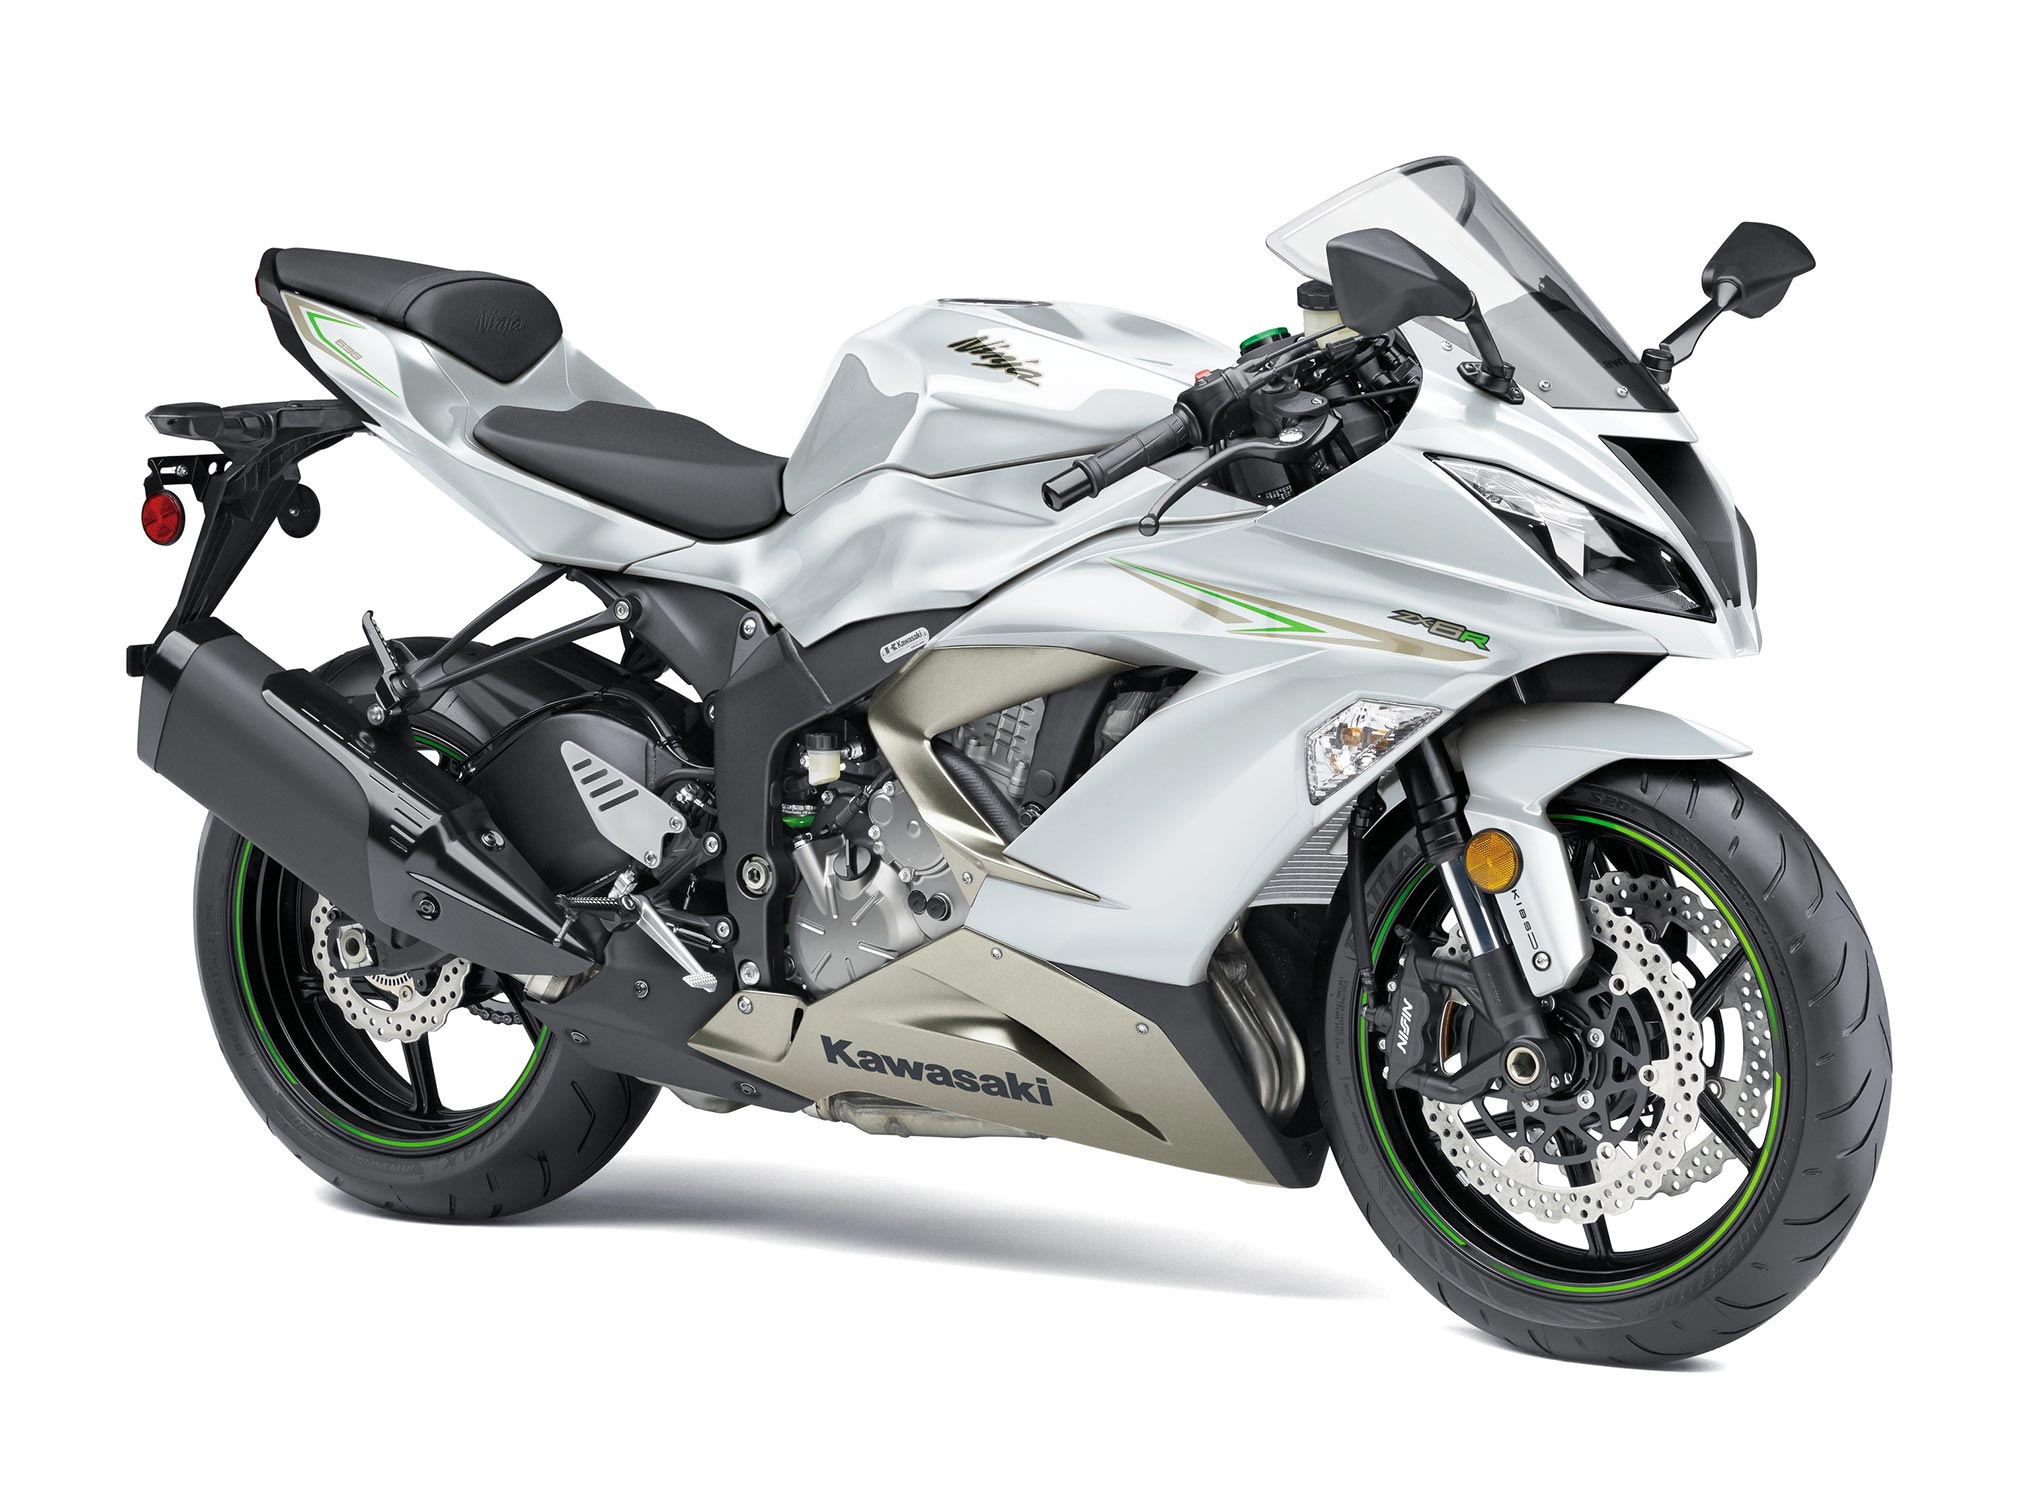 2017 Kawasaki Ninja Zx 6r Review